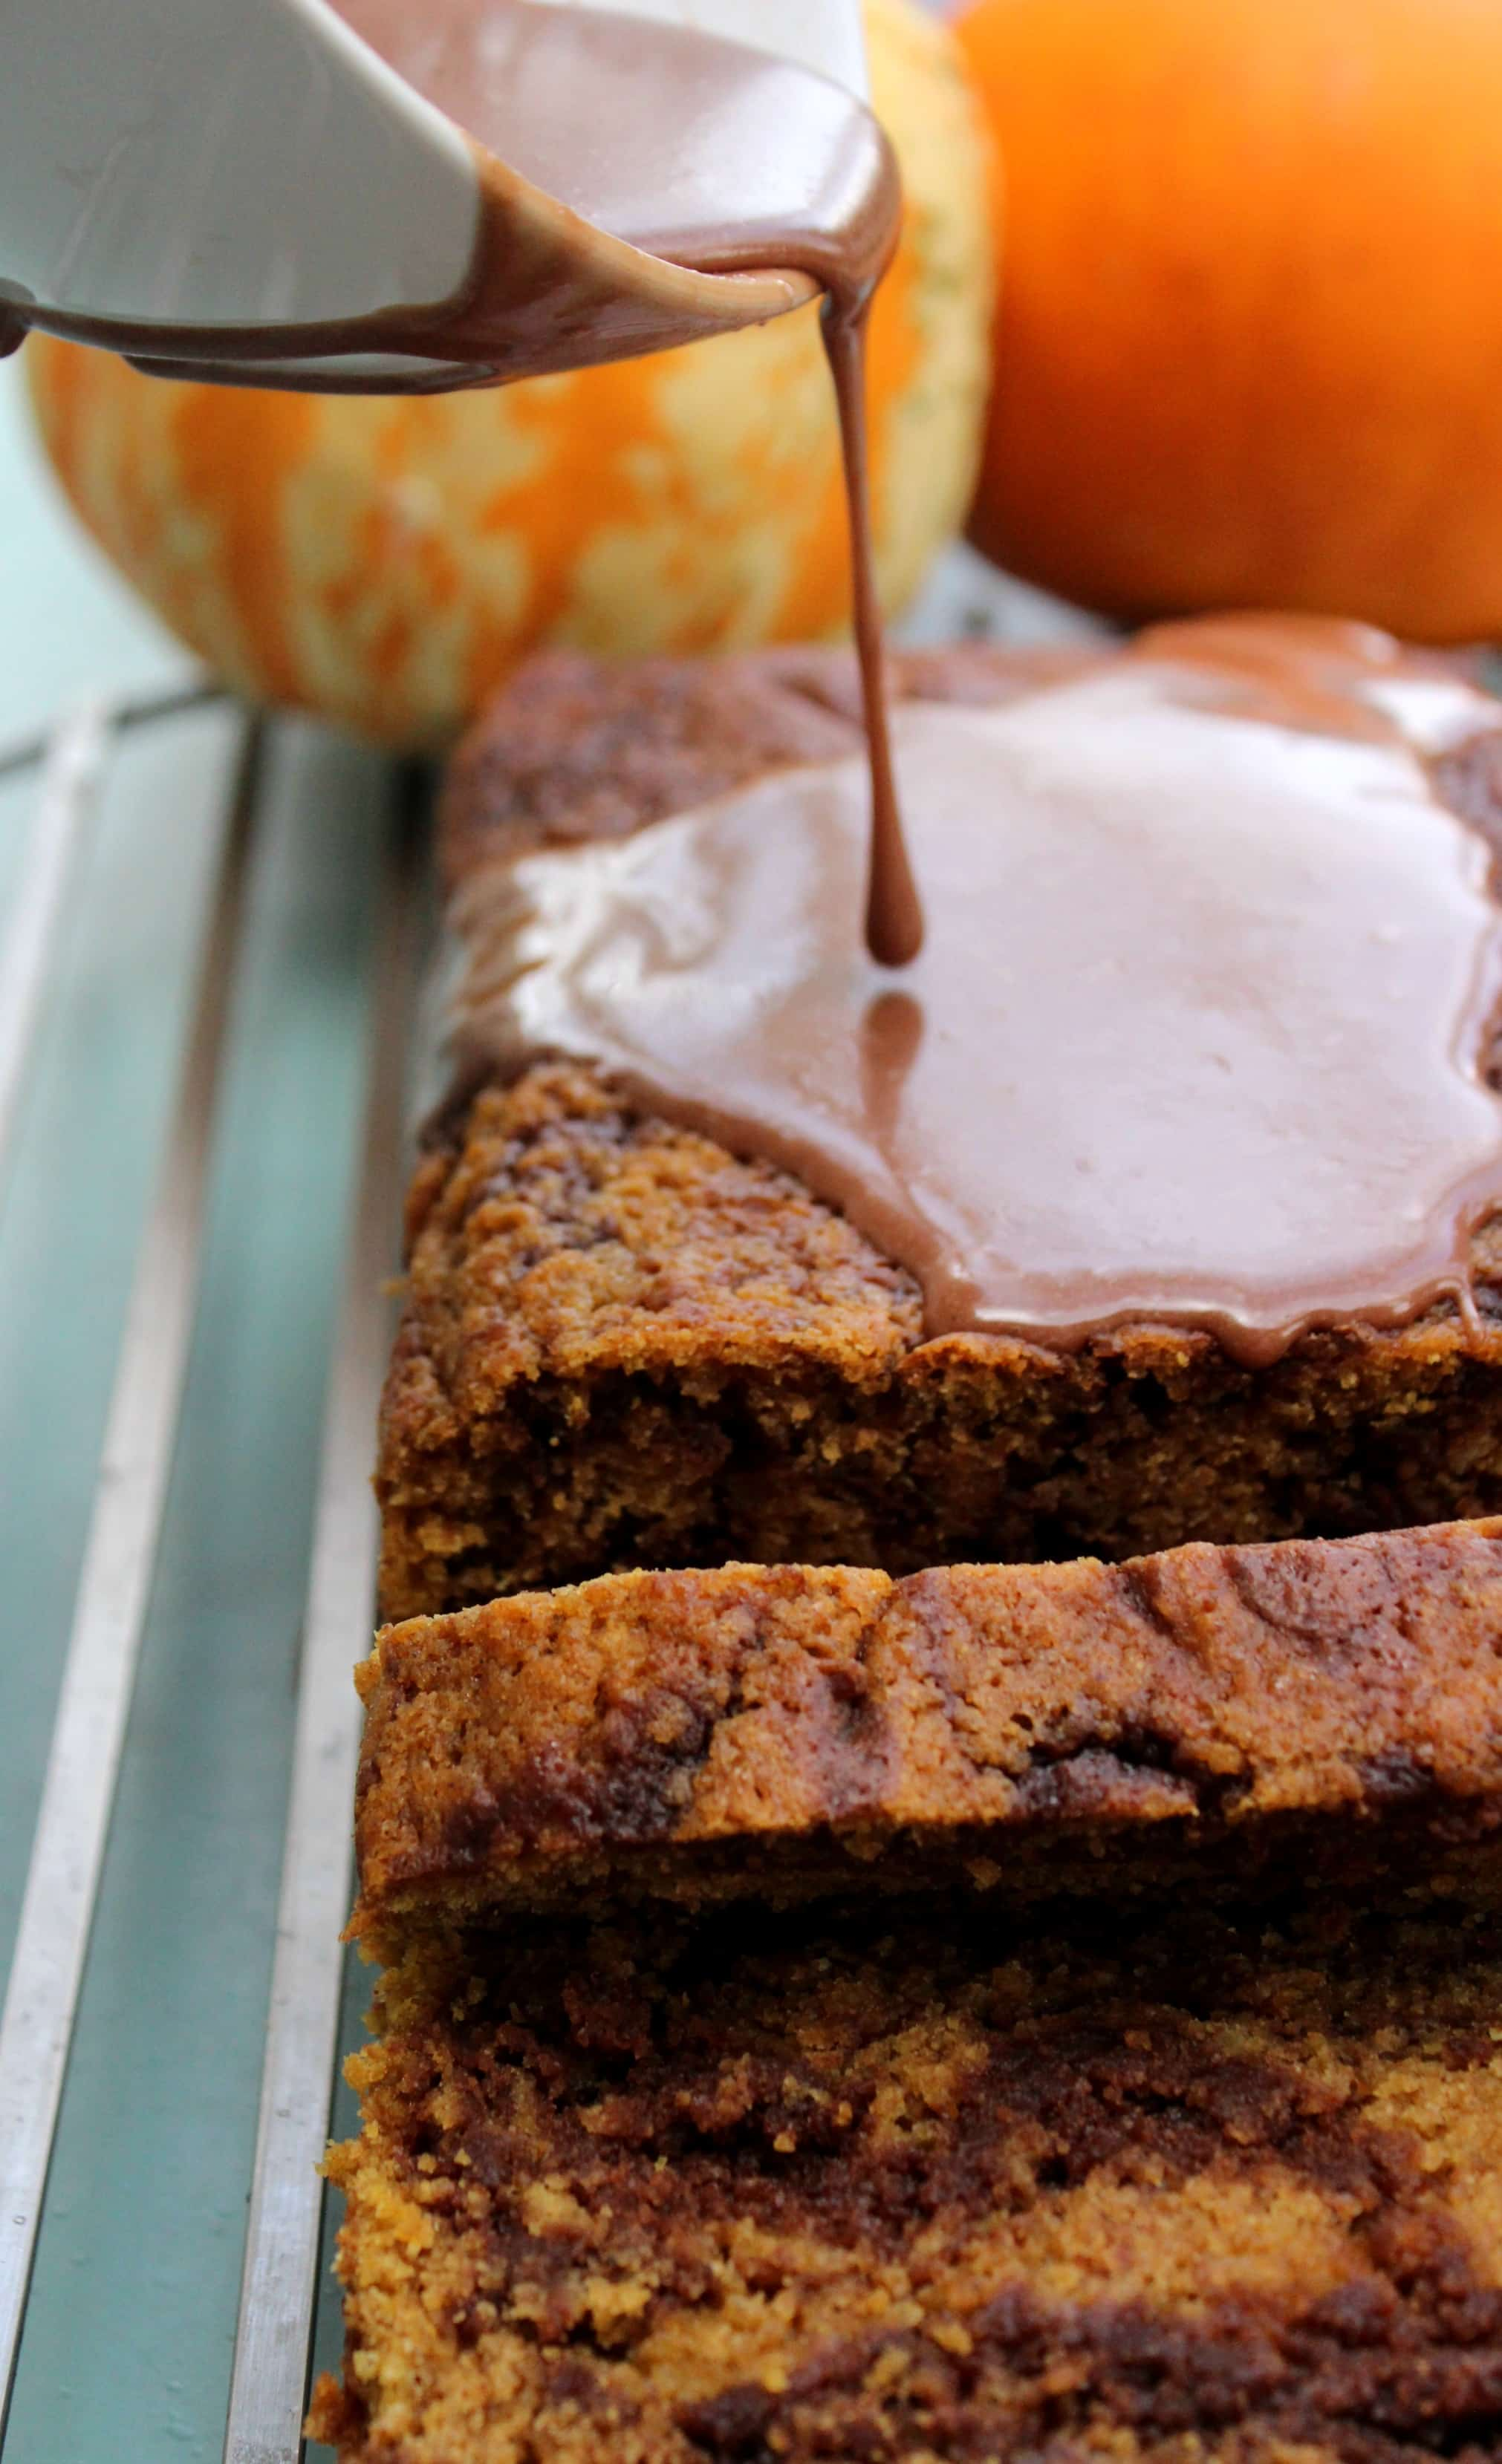 Pumpkin Nutella Swirl Bread takes pumpkin, chocolate, & hazelnut to a new level. Not only is it a beauty to look at, it's moist and full of fall flavors.